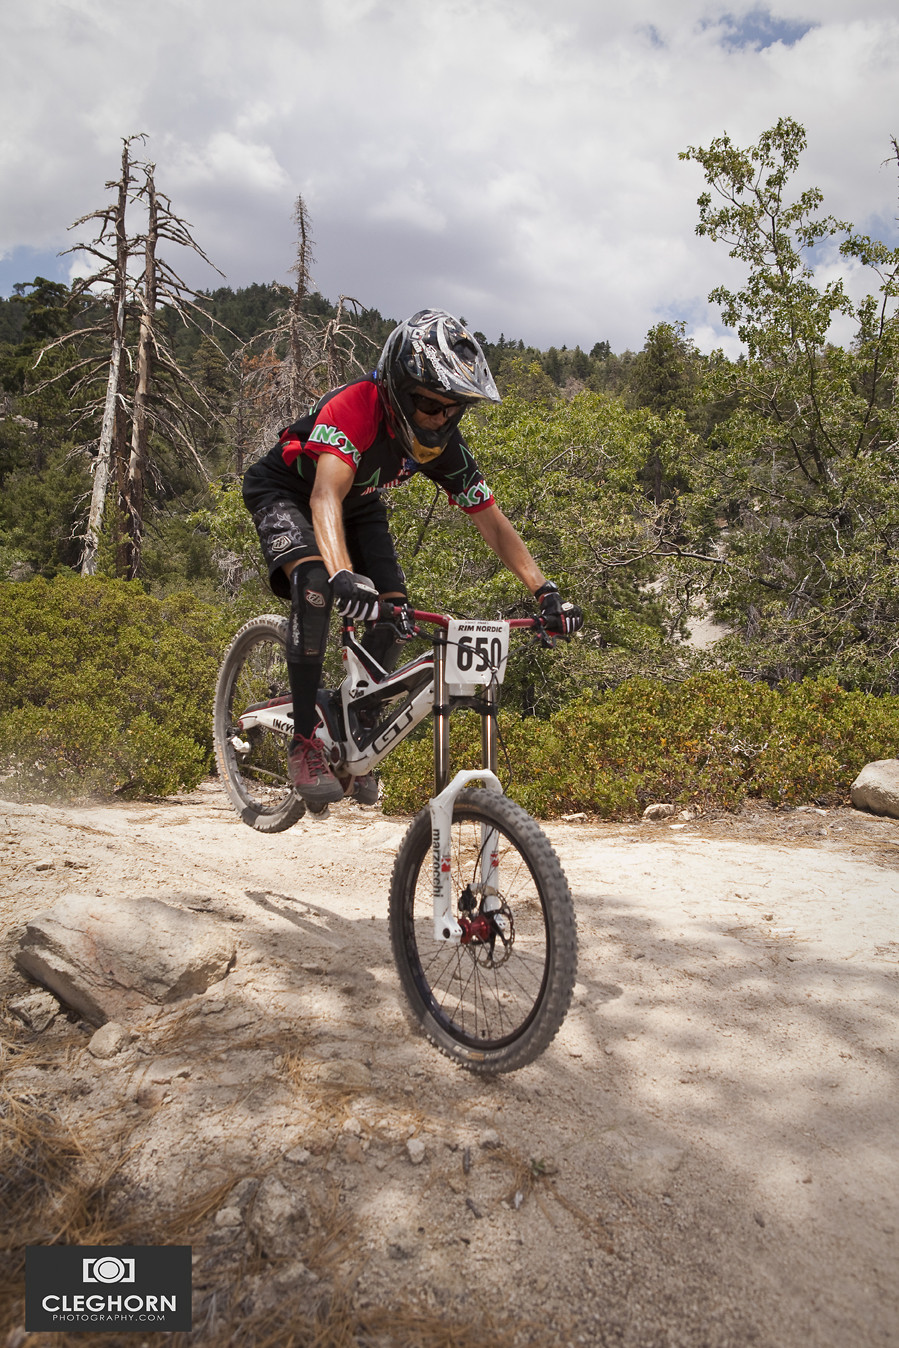 MG 0516 - Cleghorn Photography - Mountain Biking Pictures - Vital MTB